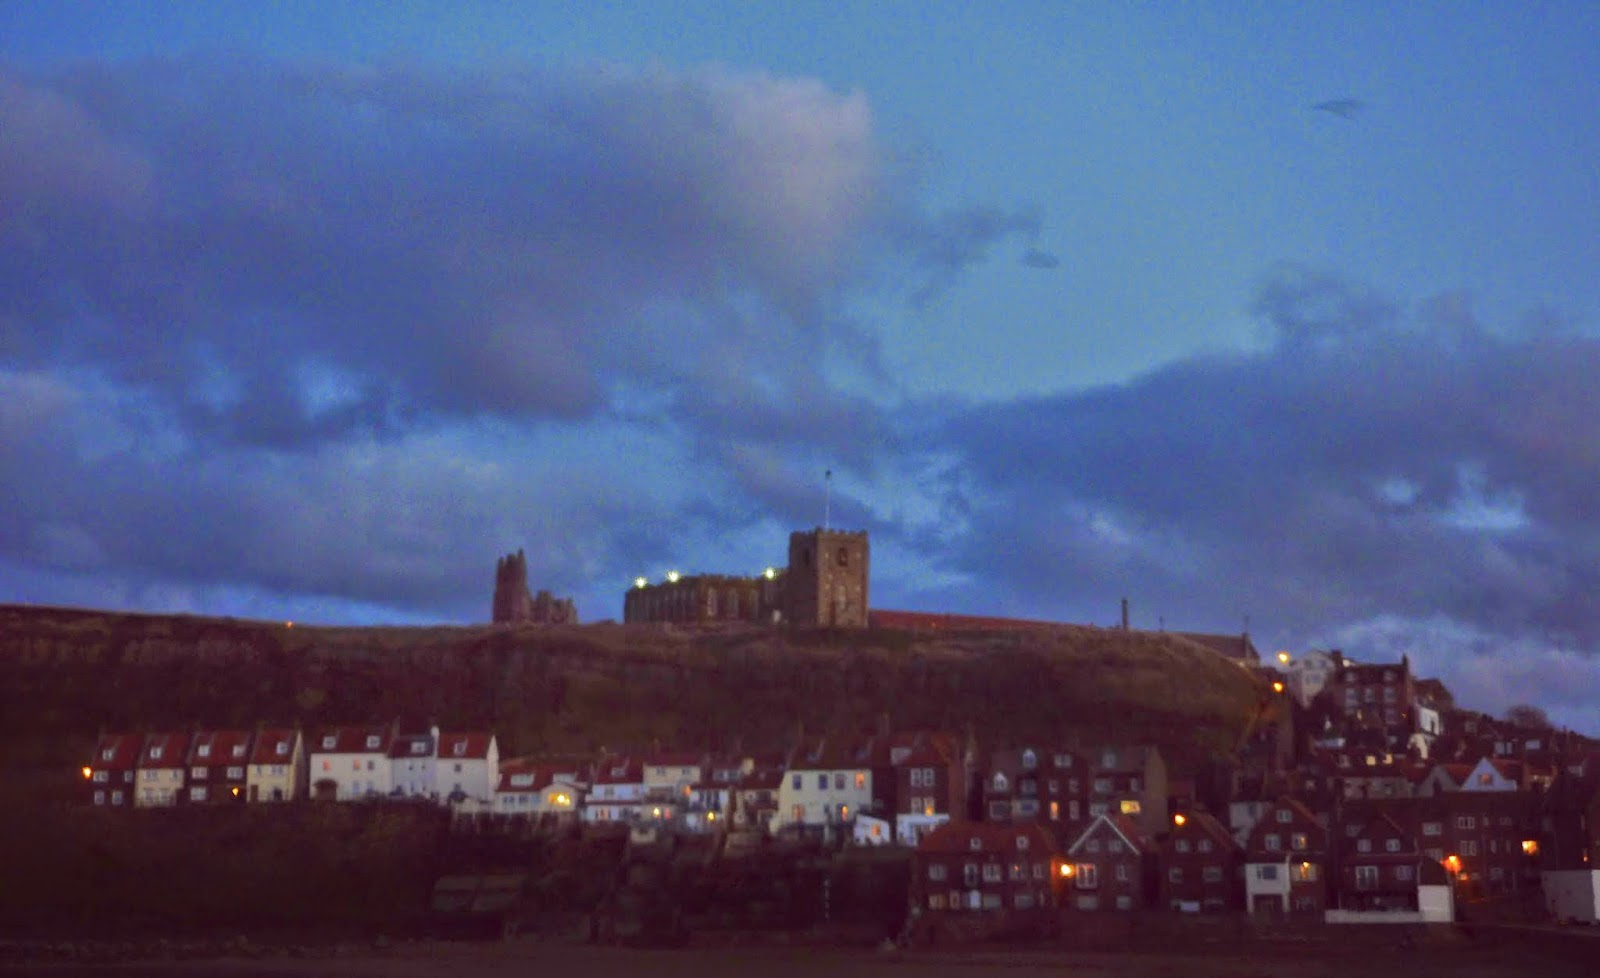 Whitby-Abbey-by-night